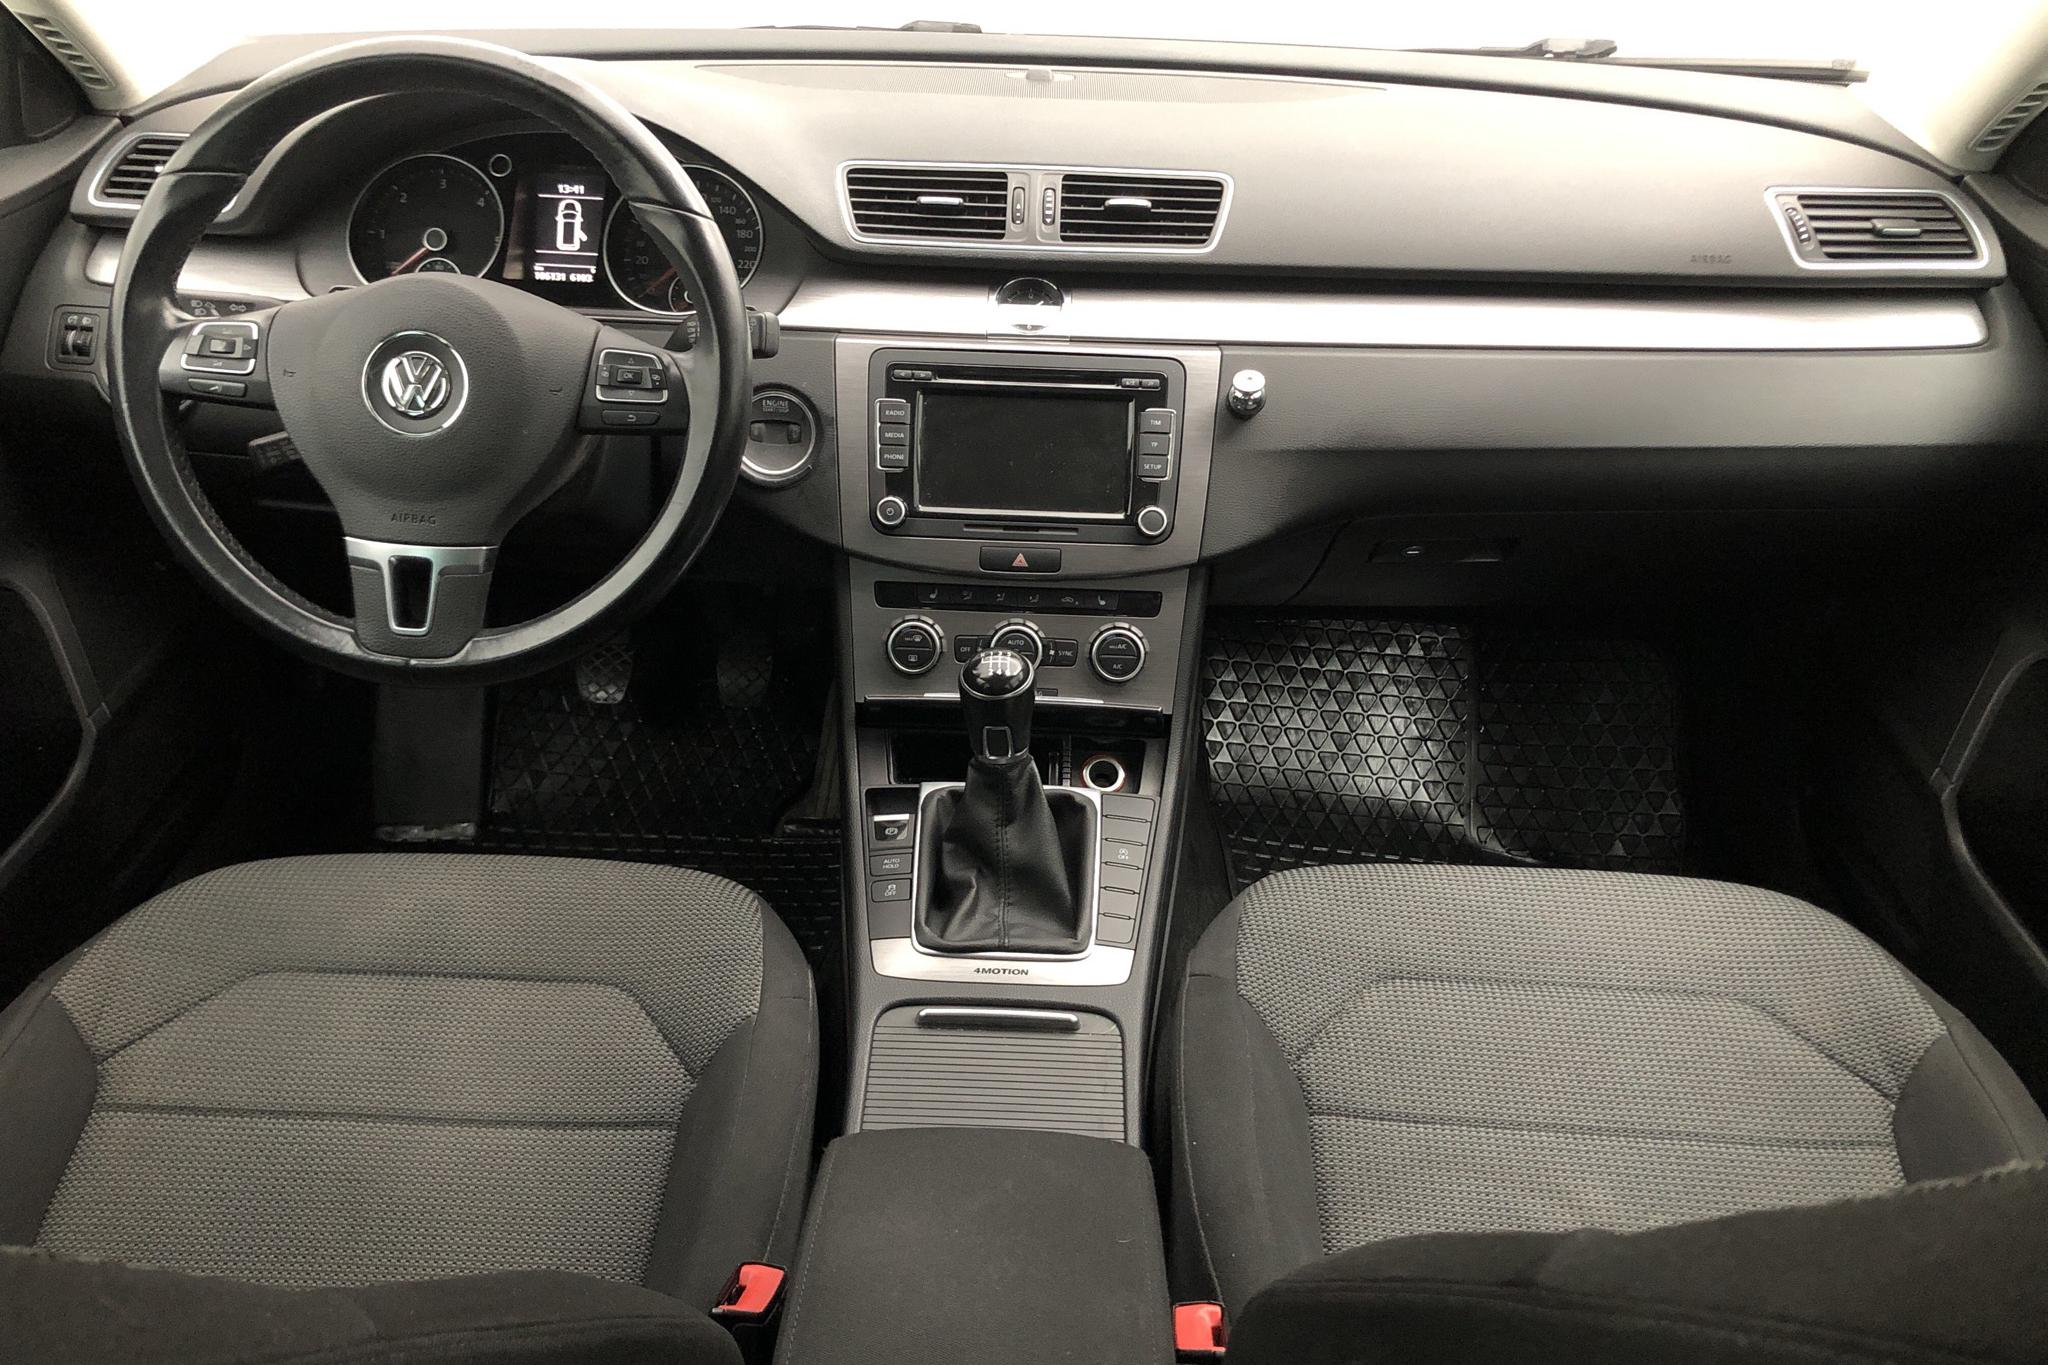 VW Passat 2.0 TDI BlueMotion Technology Variant 4Motion (140hk) - 10 388 mil - Manuell - svart - 2013